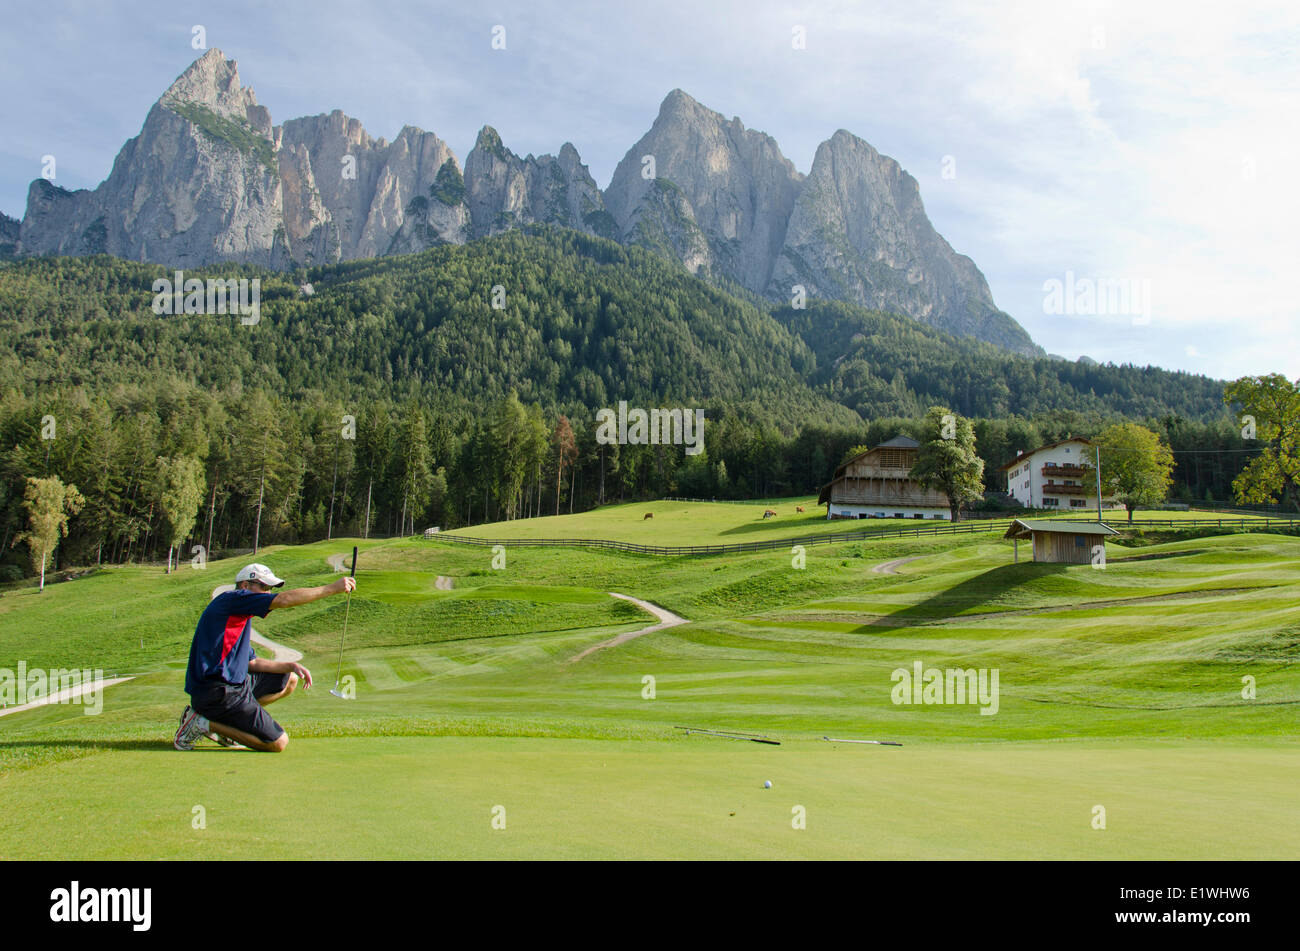 Golfclub St.Vigil Seis, Kastelruth, with Dolomite Mountains in background, Italy - Stock Image